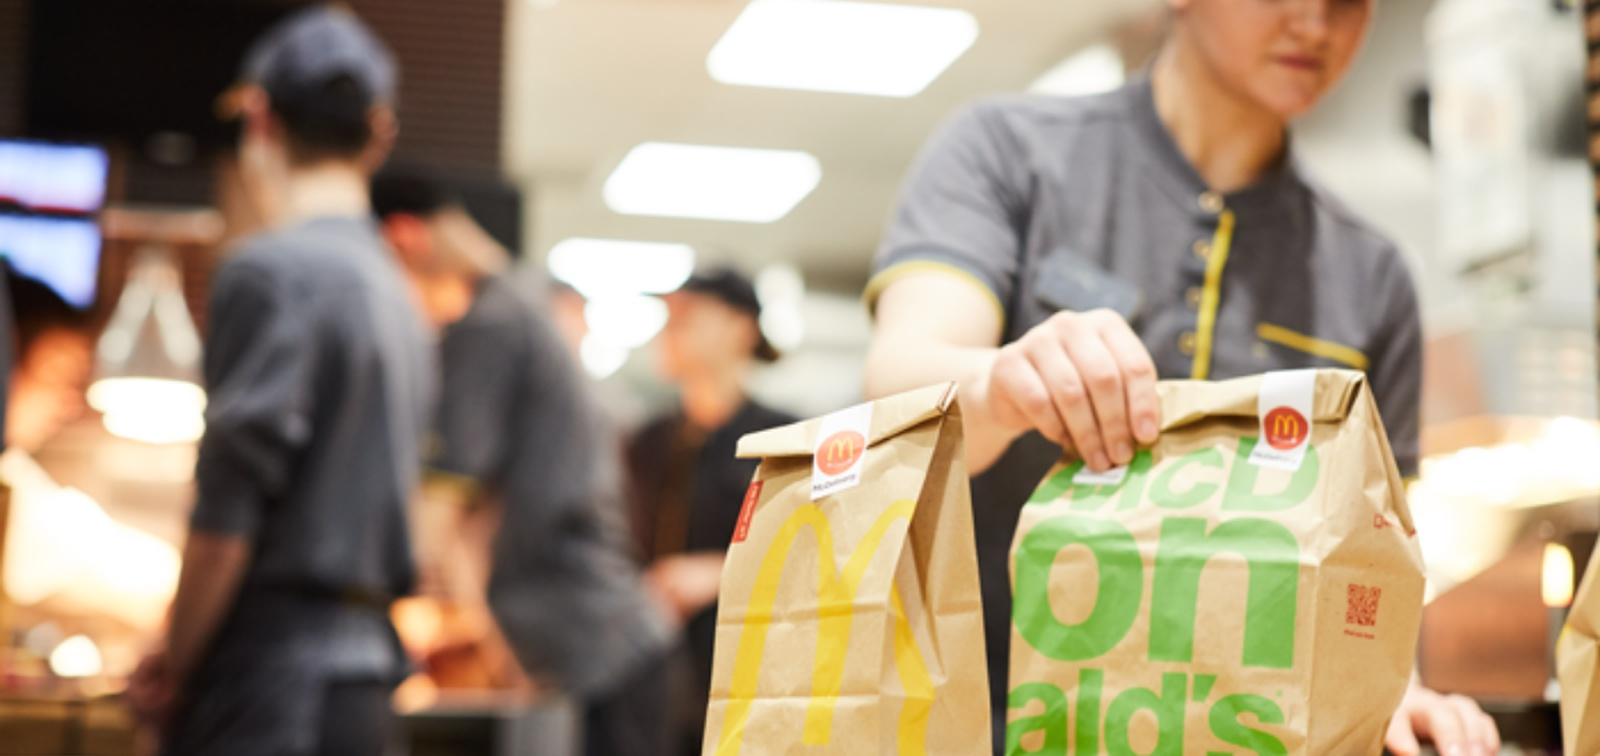 McDonald's expands delivery with Grubhub partnership